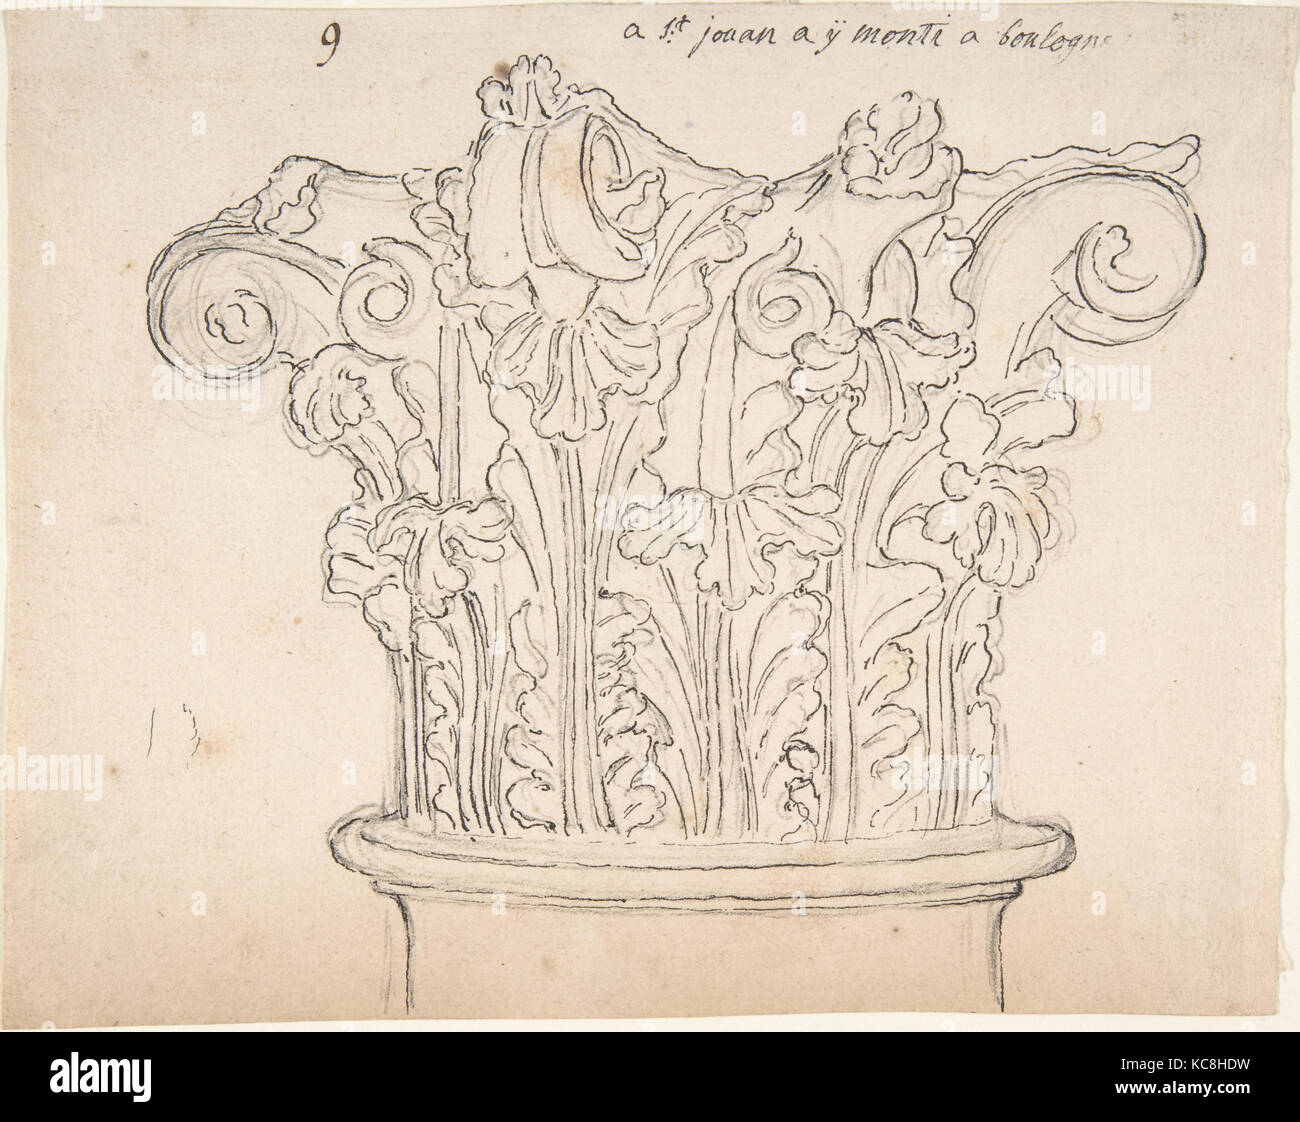 Capital with Acanthus Leaves, Anonymous, French, 18th century - Stock Image